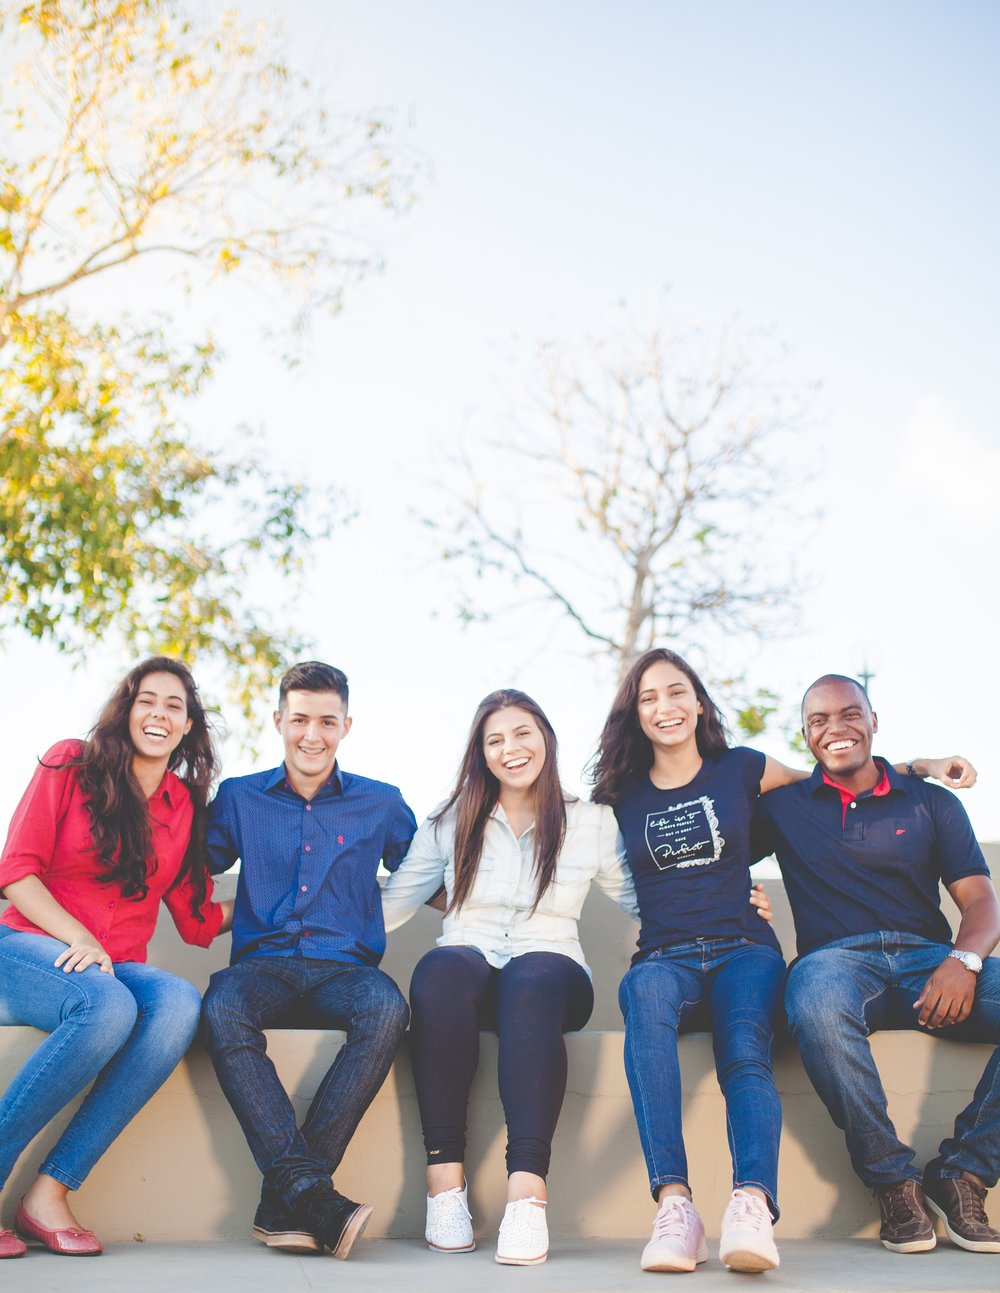 General Education Scholarship - The second scholarship is the General Education Scholarship in the amount of$1,000. This scholarship may be used at any university, community college orvocational school. This scholarship will be awarded to the applicant who has showna strong work ethic, leadership qualities, and a desire to continue their success at aschool of their choosing.